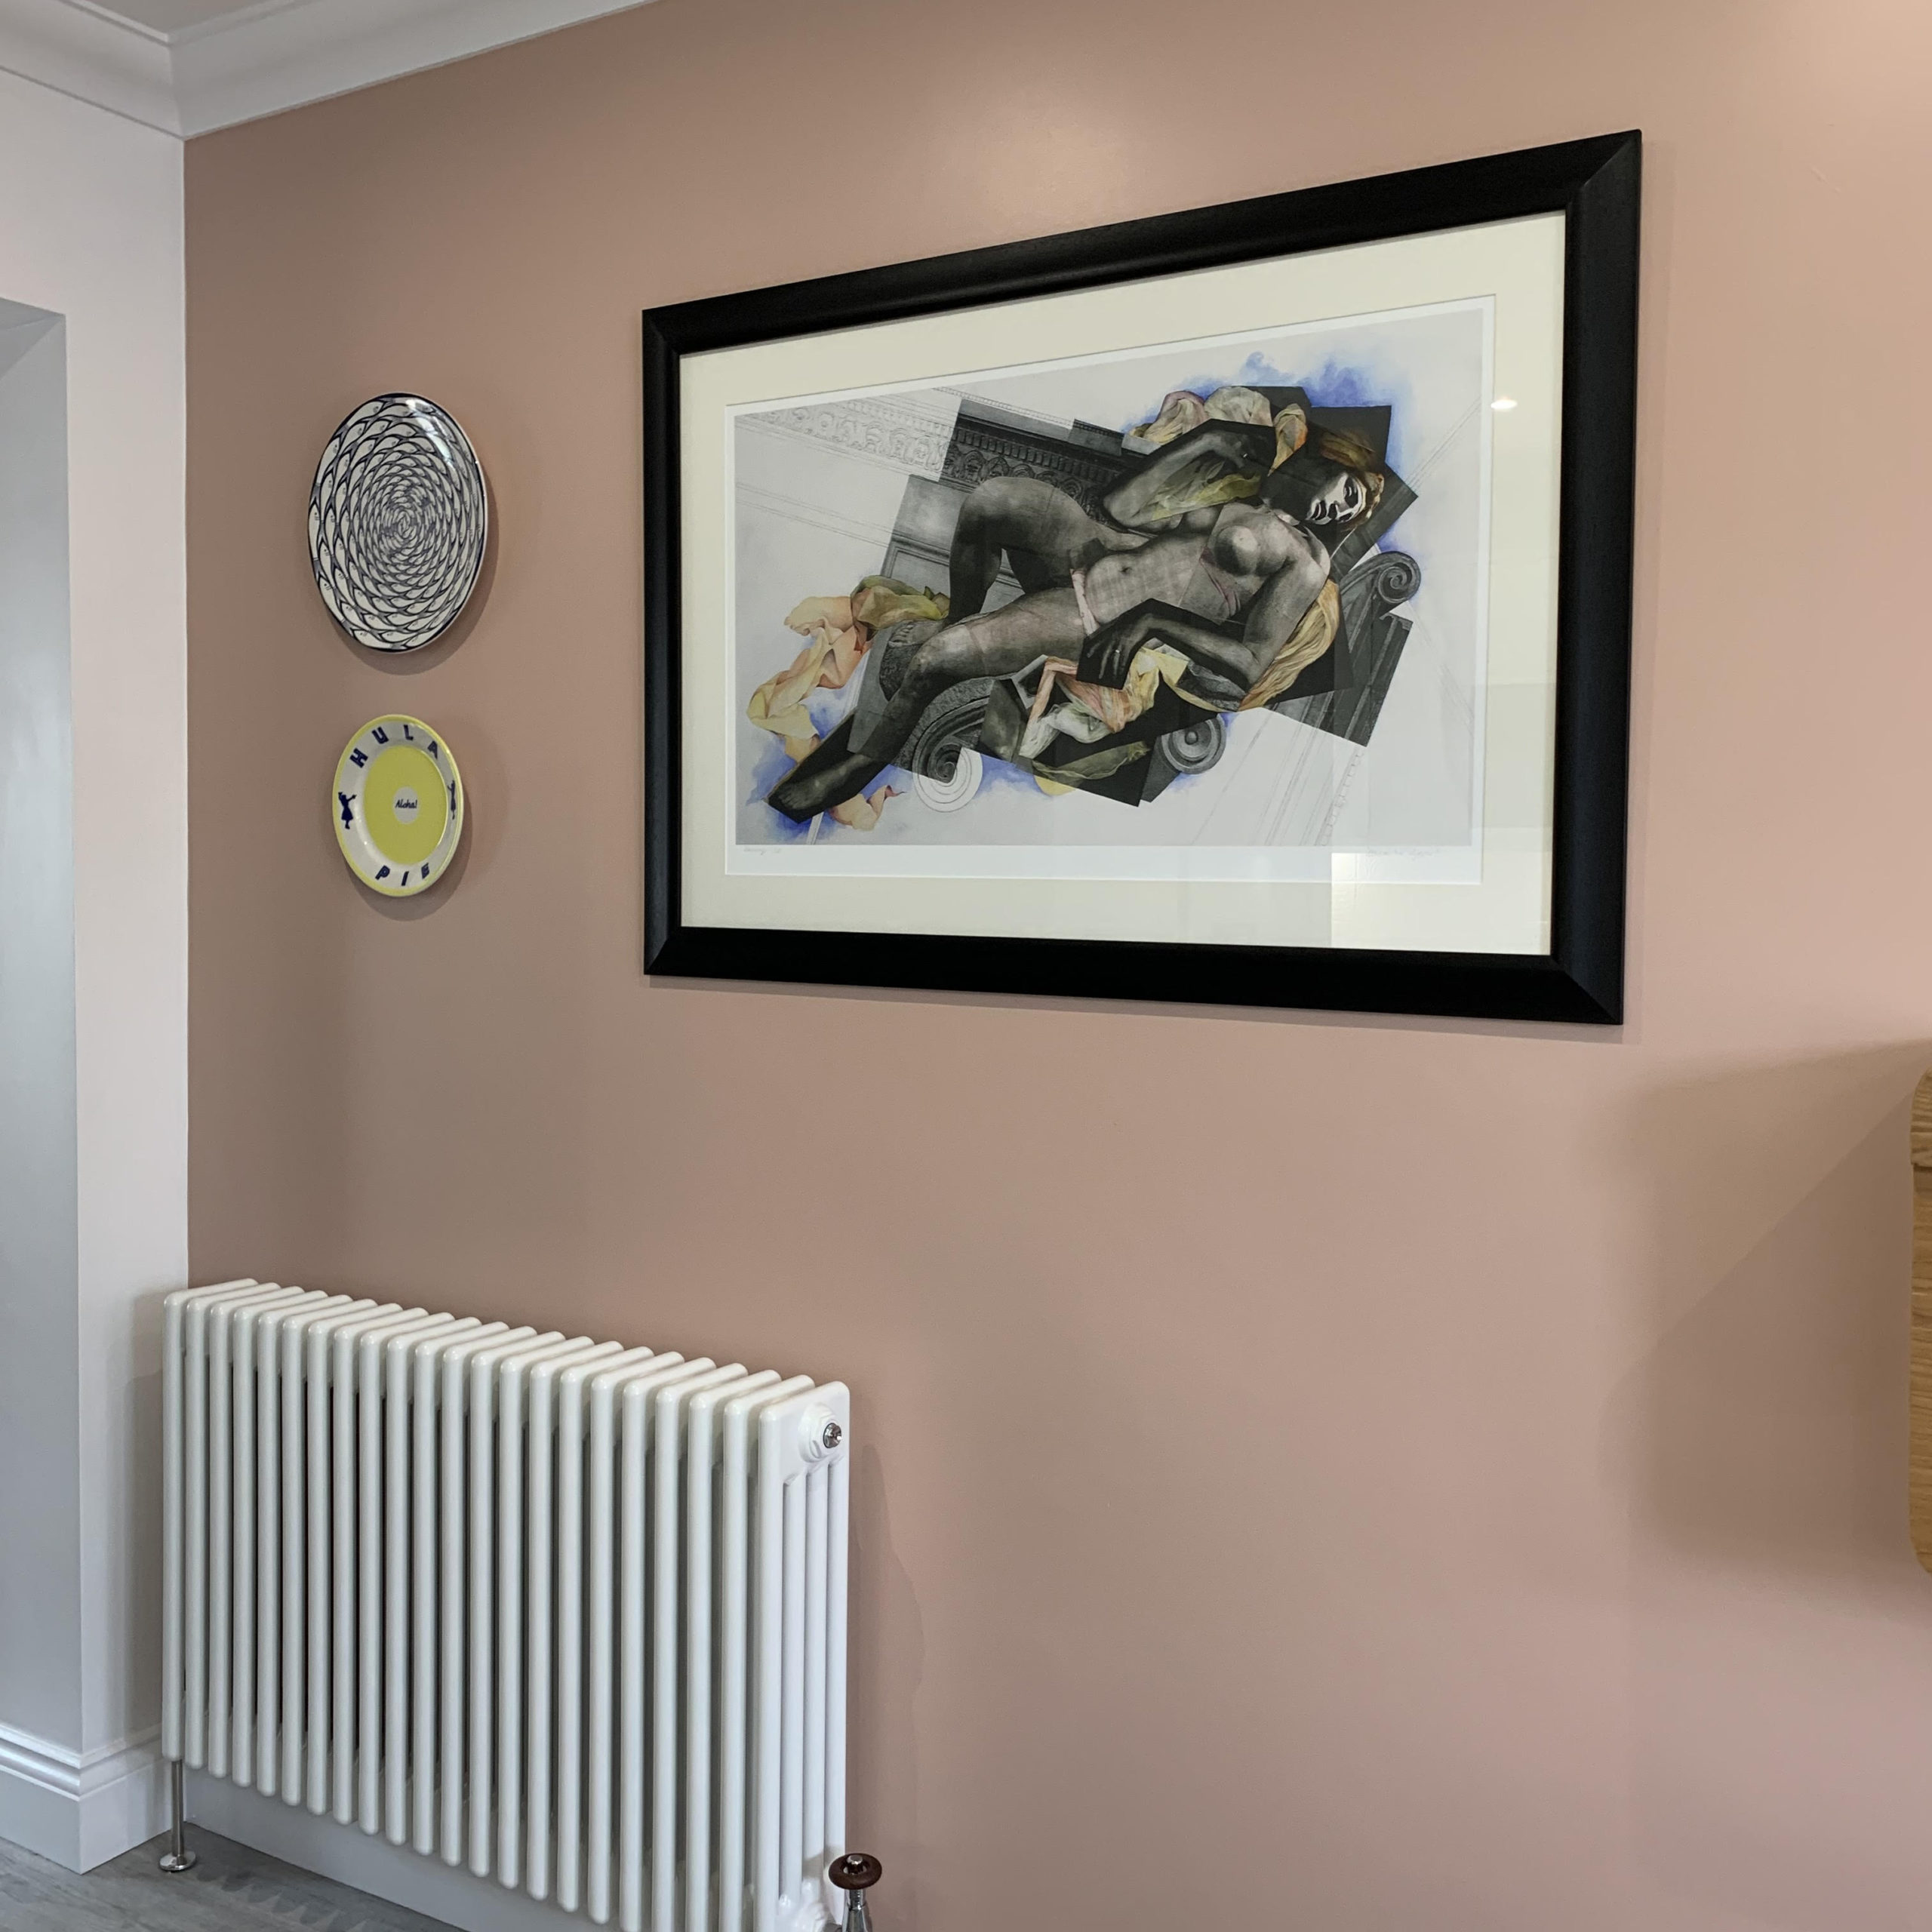 get plastered painted wall with framed artwork, hung plates and a white radiator